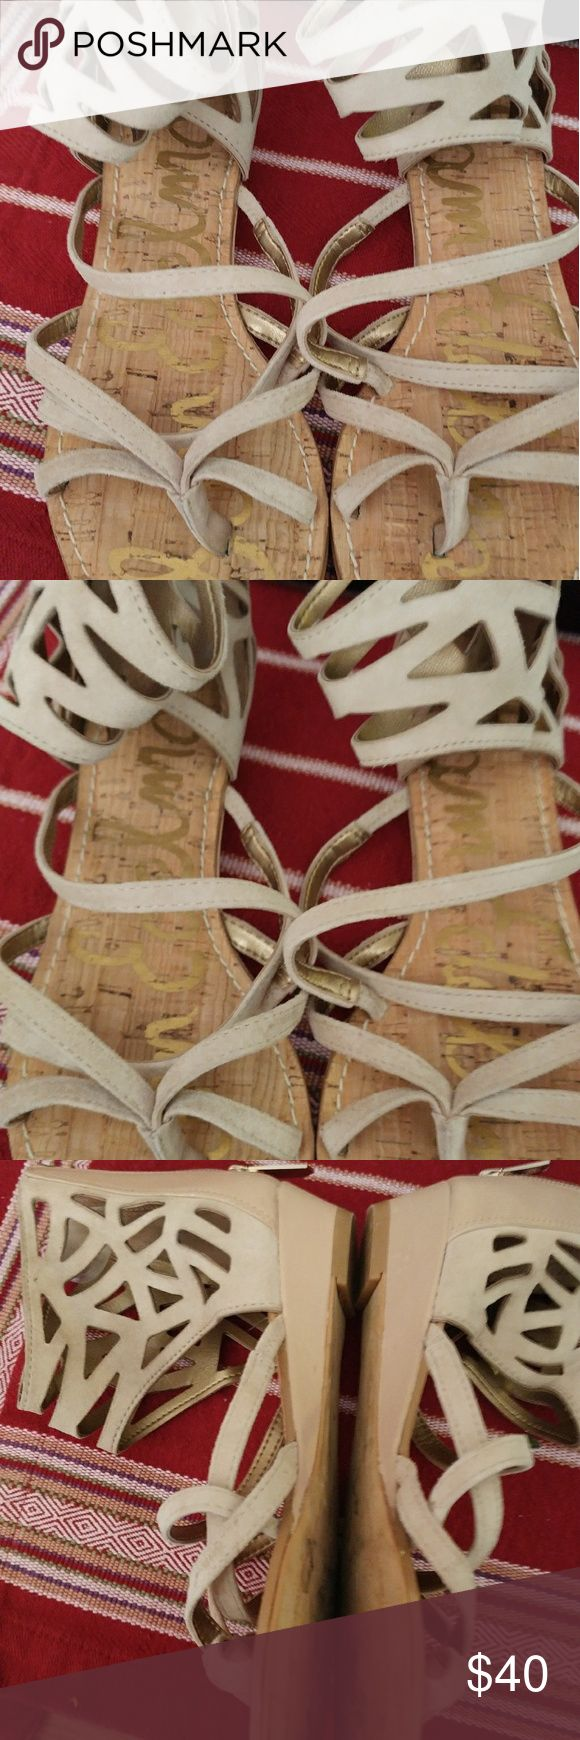 Sam Edleman Dana Gladiator Sandals Size 5 Pre-owned. Worn a couple of times. Authentic. Zipper backing. Sam Edelman Shoes Sandals